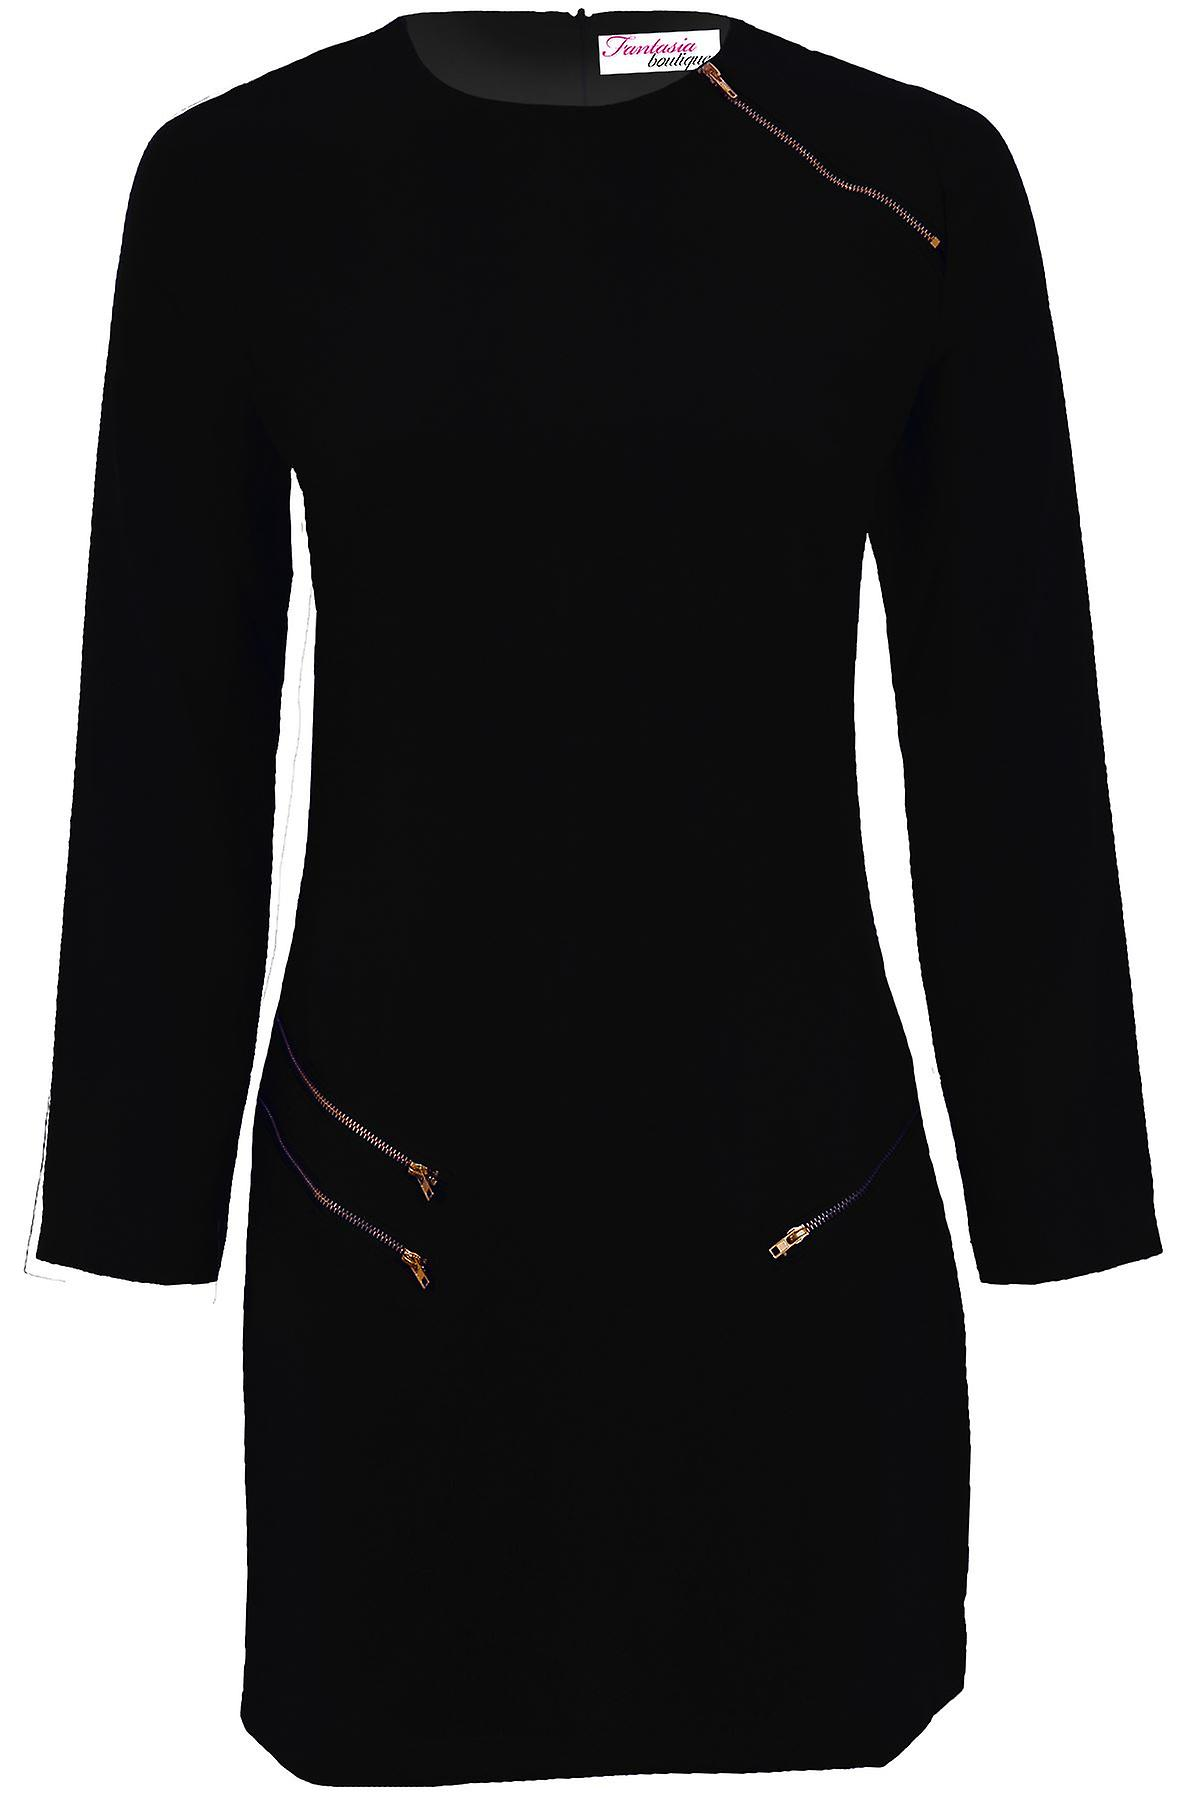 Ladies Long Sleeve Crepe Textured Gold Zip Smart Women's Fitted Party Dress